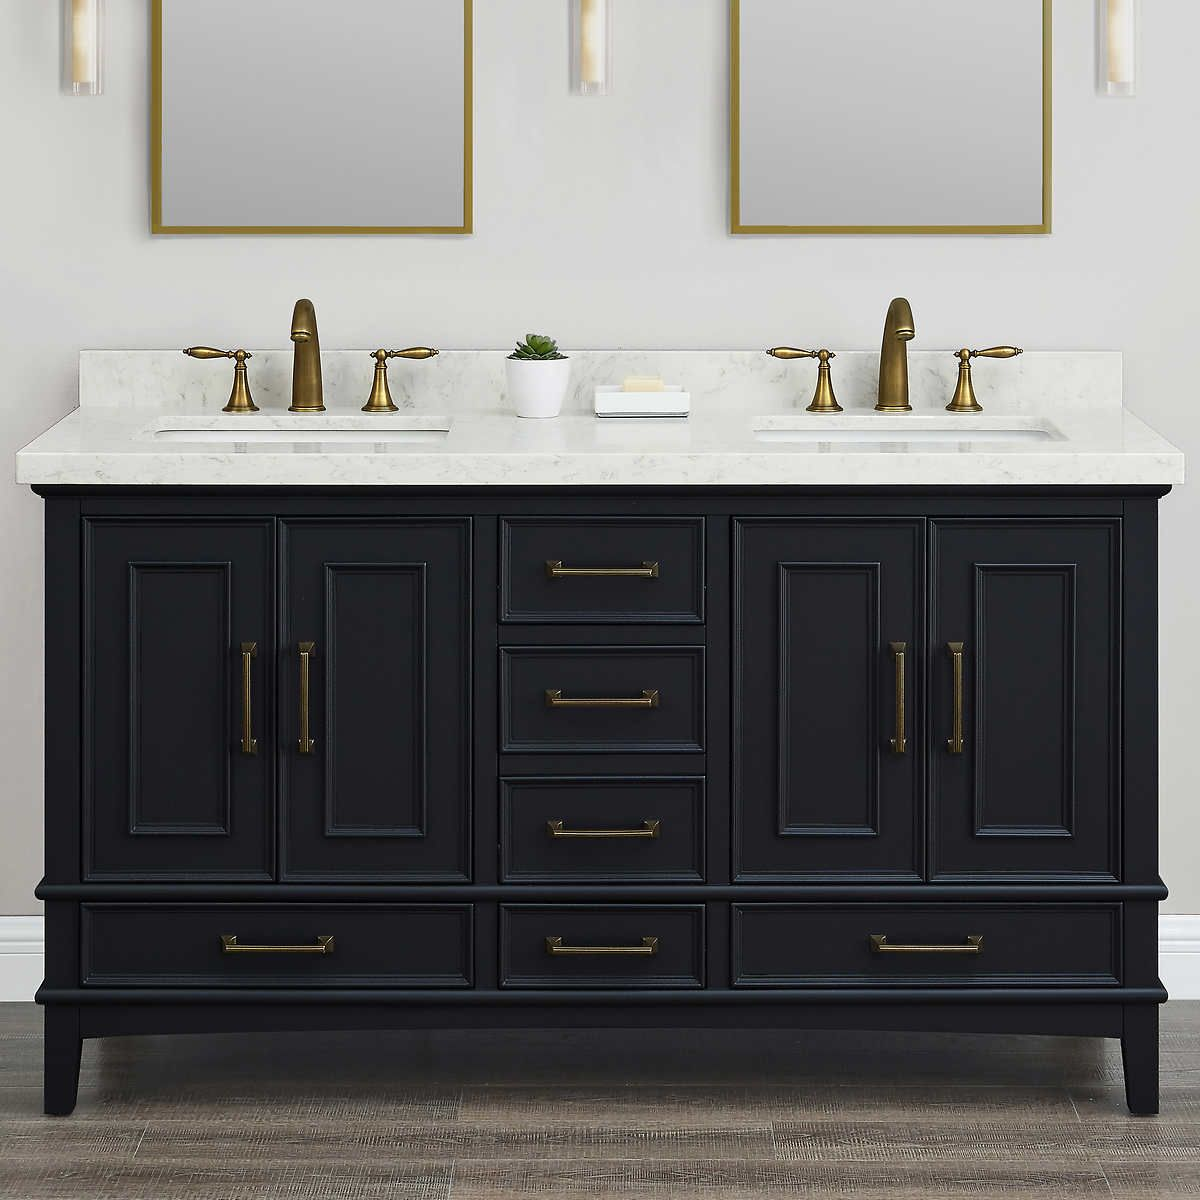 Pin By Emily Cynthia On House Double Sink Vanity 72 Double Sink